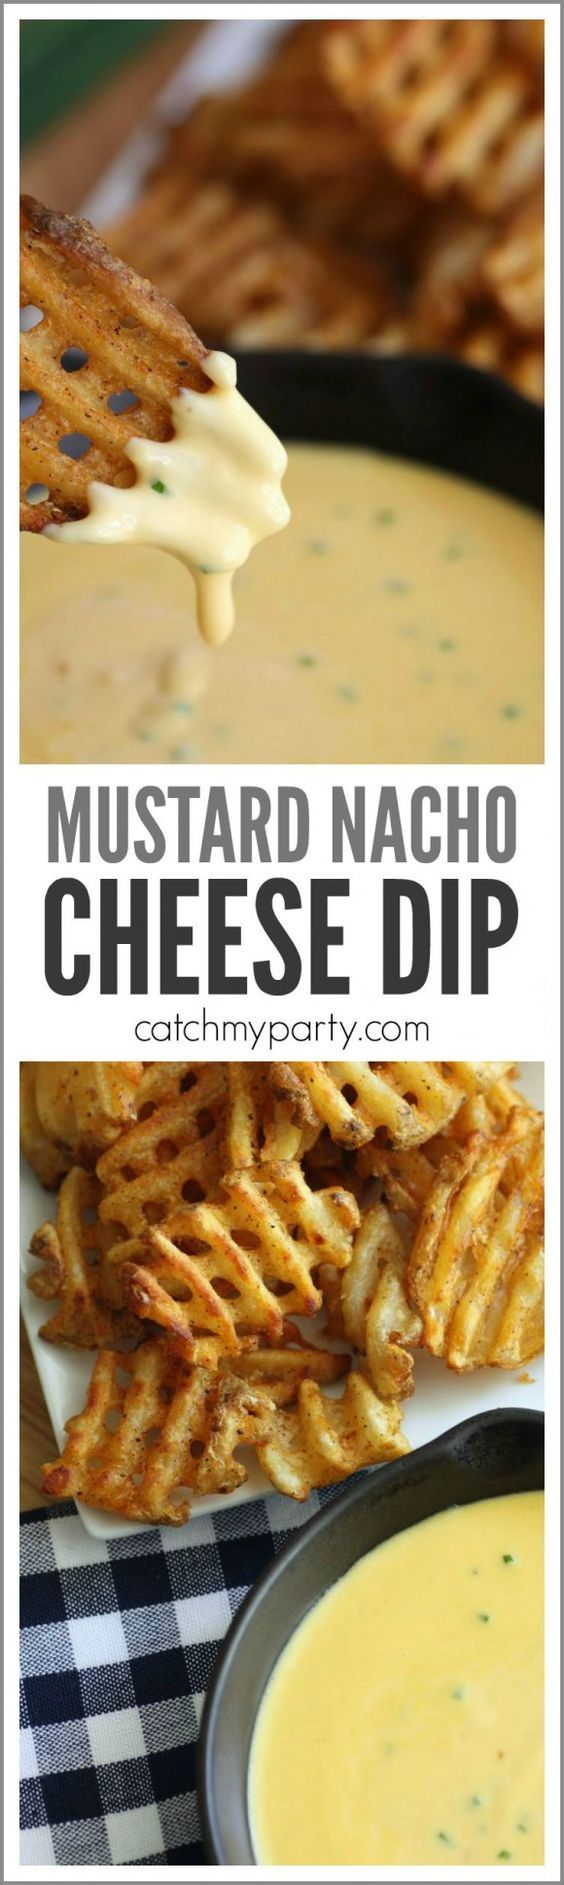 Try our mustard nacho cheese dip recipe. It's an easy thing to serve at a football party and they go great with @alexiafoods fries! | CatchMyParty.com #FarmToFresh #ad